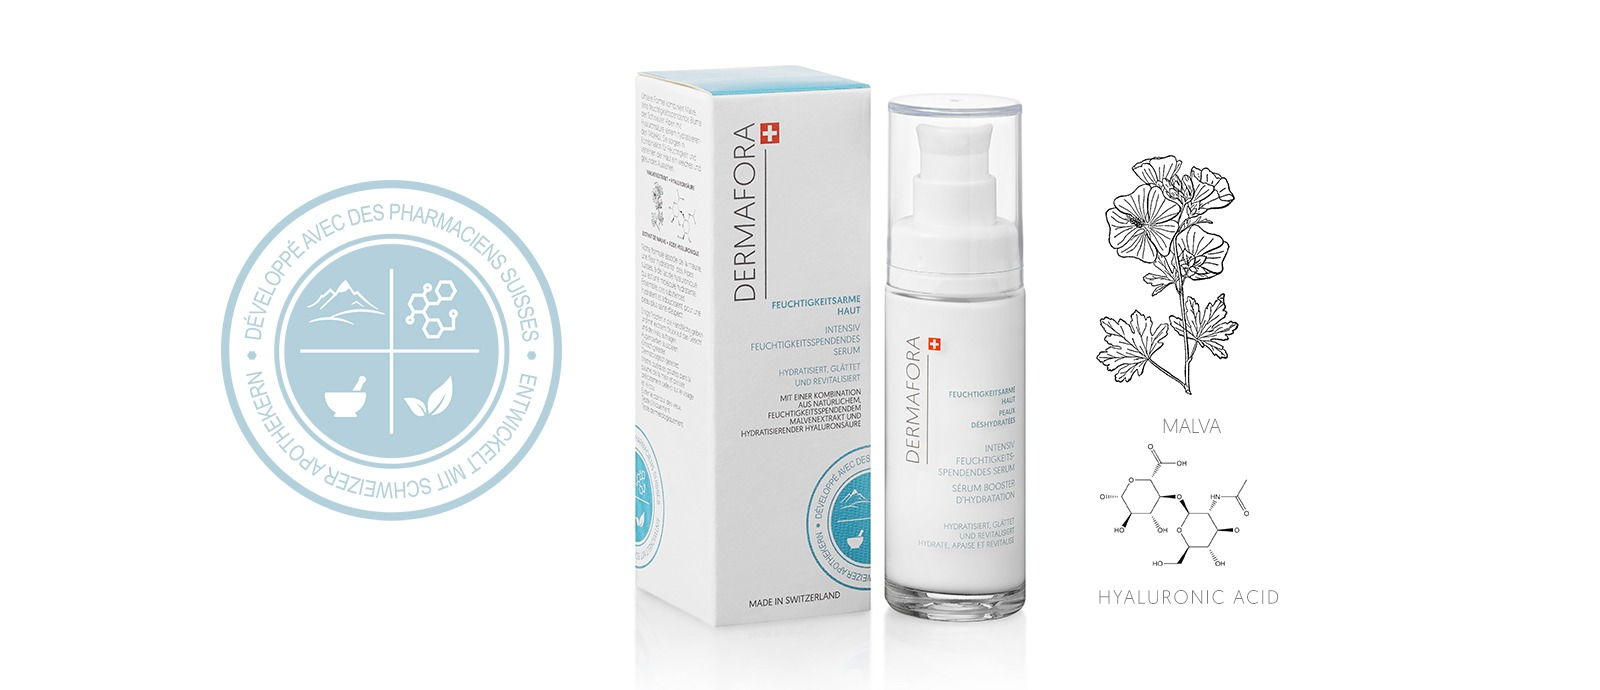 DEHYDRATED skin, MOISTURE BOOST SERUM